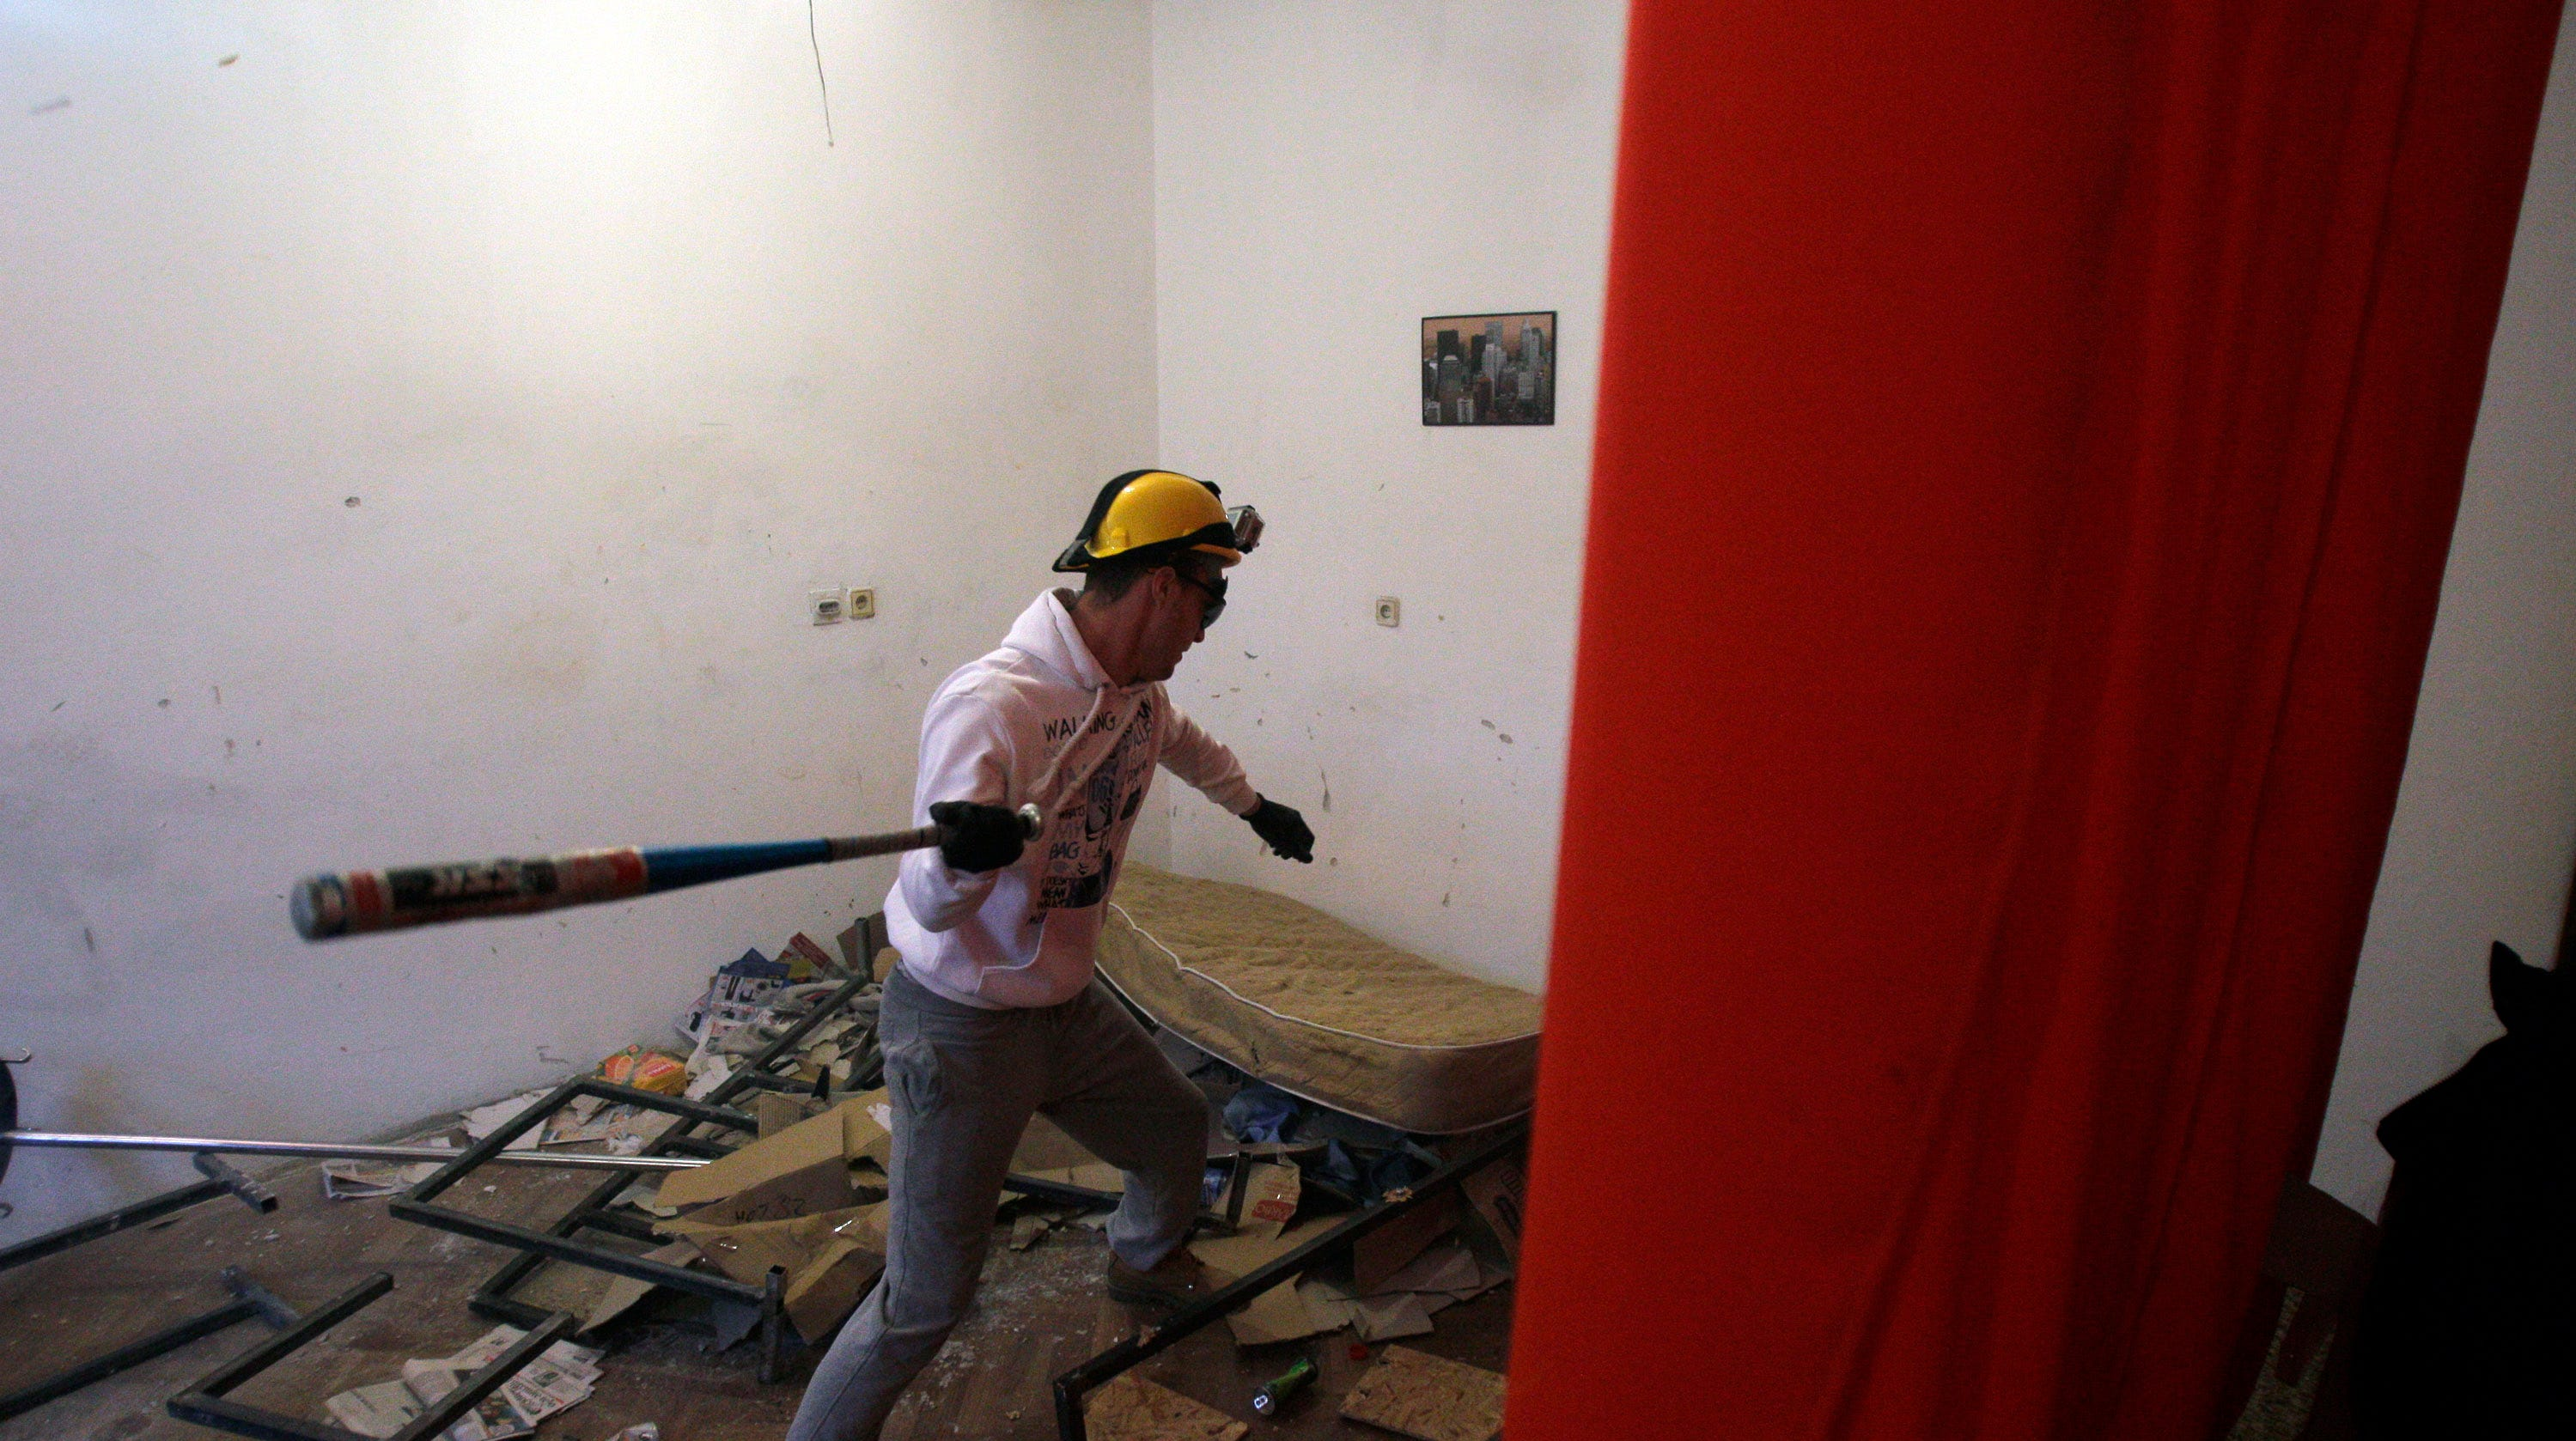 Rage rooms: Why recreational smashing could be good for your mental health